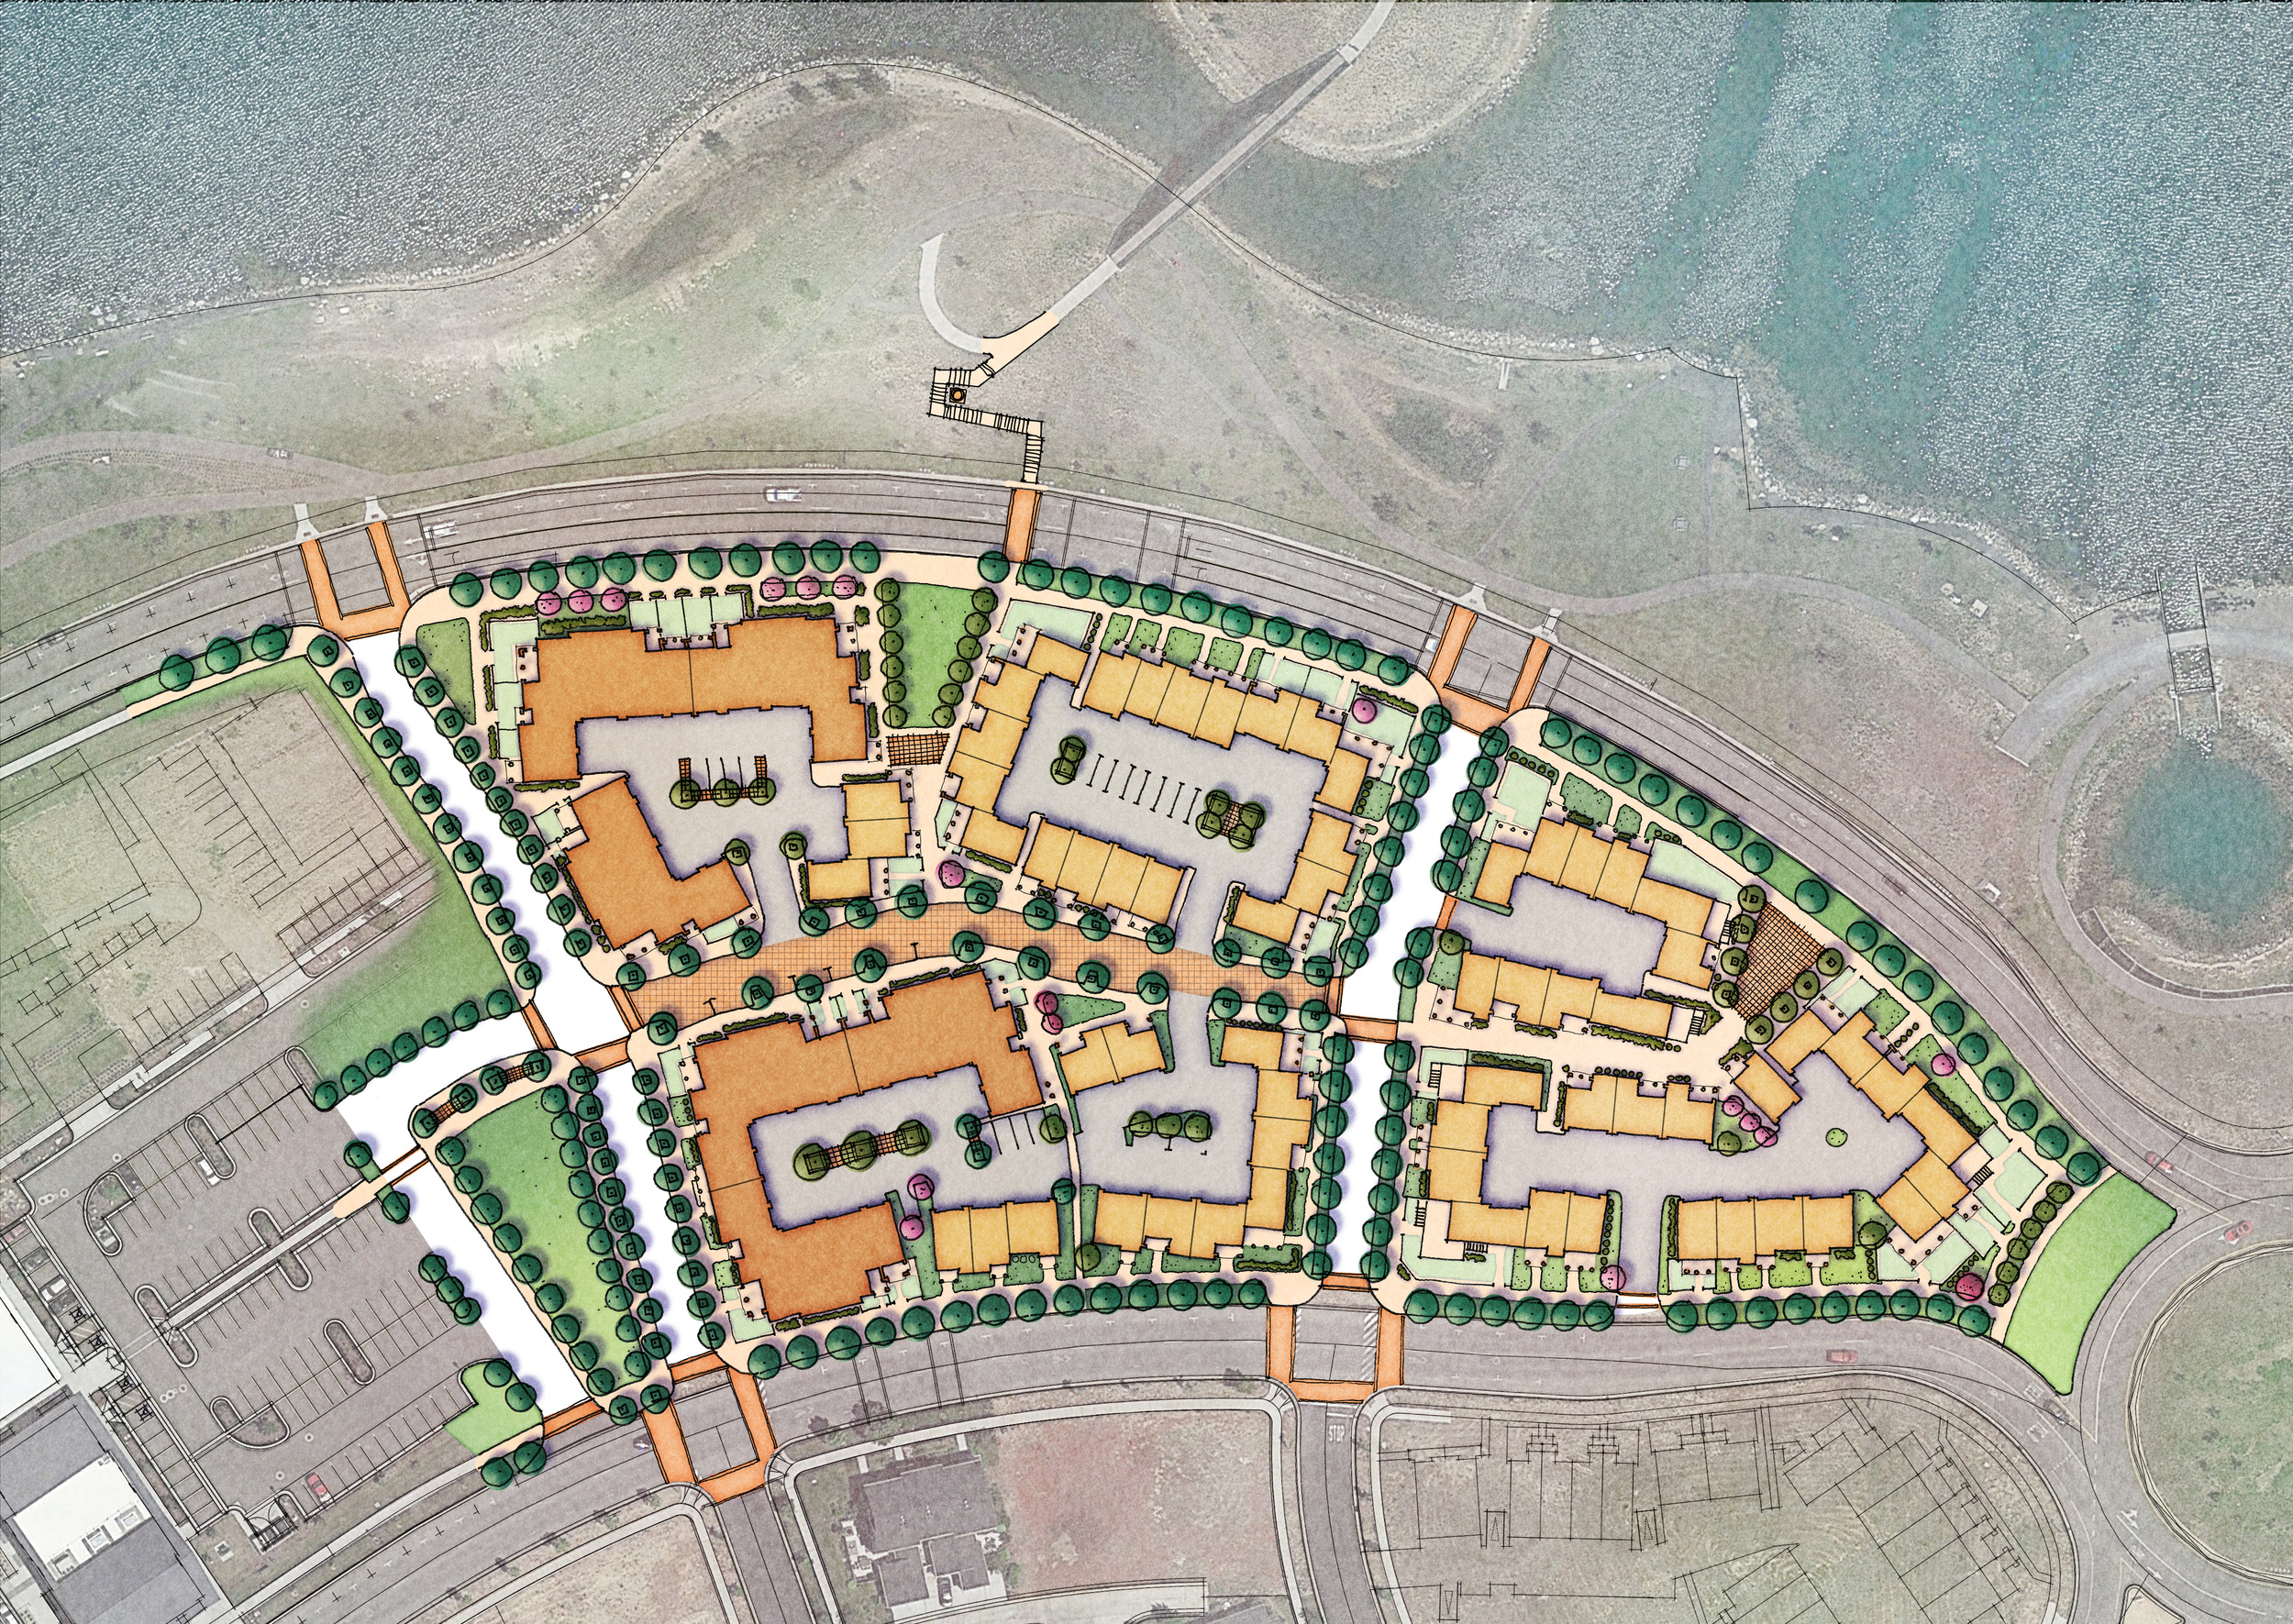 East Couplet Revised Master Plan– with Sego Homes (Under Construction)